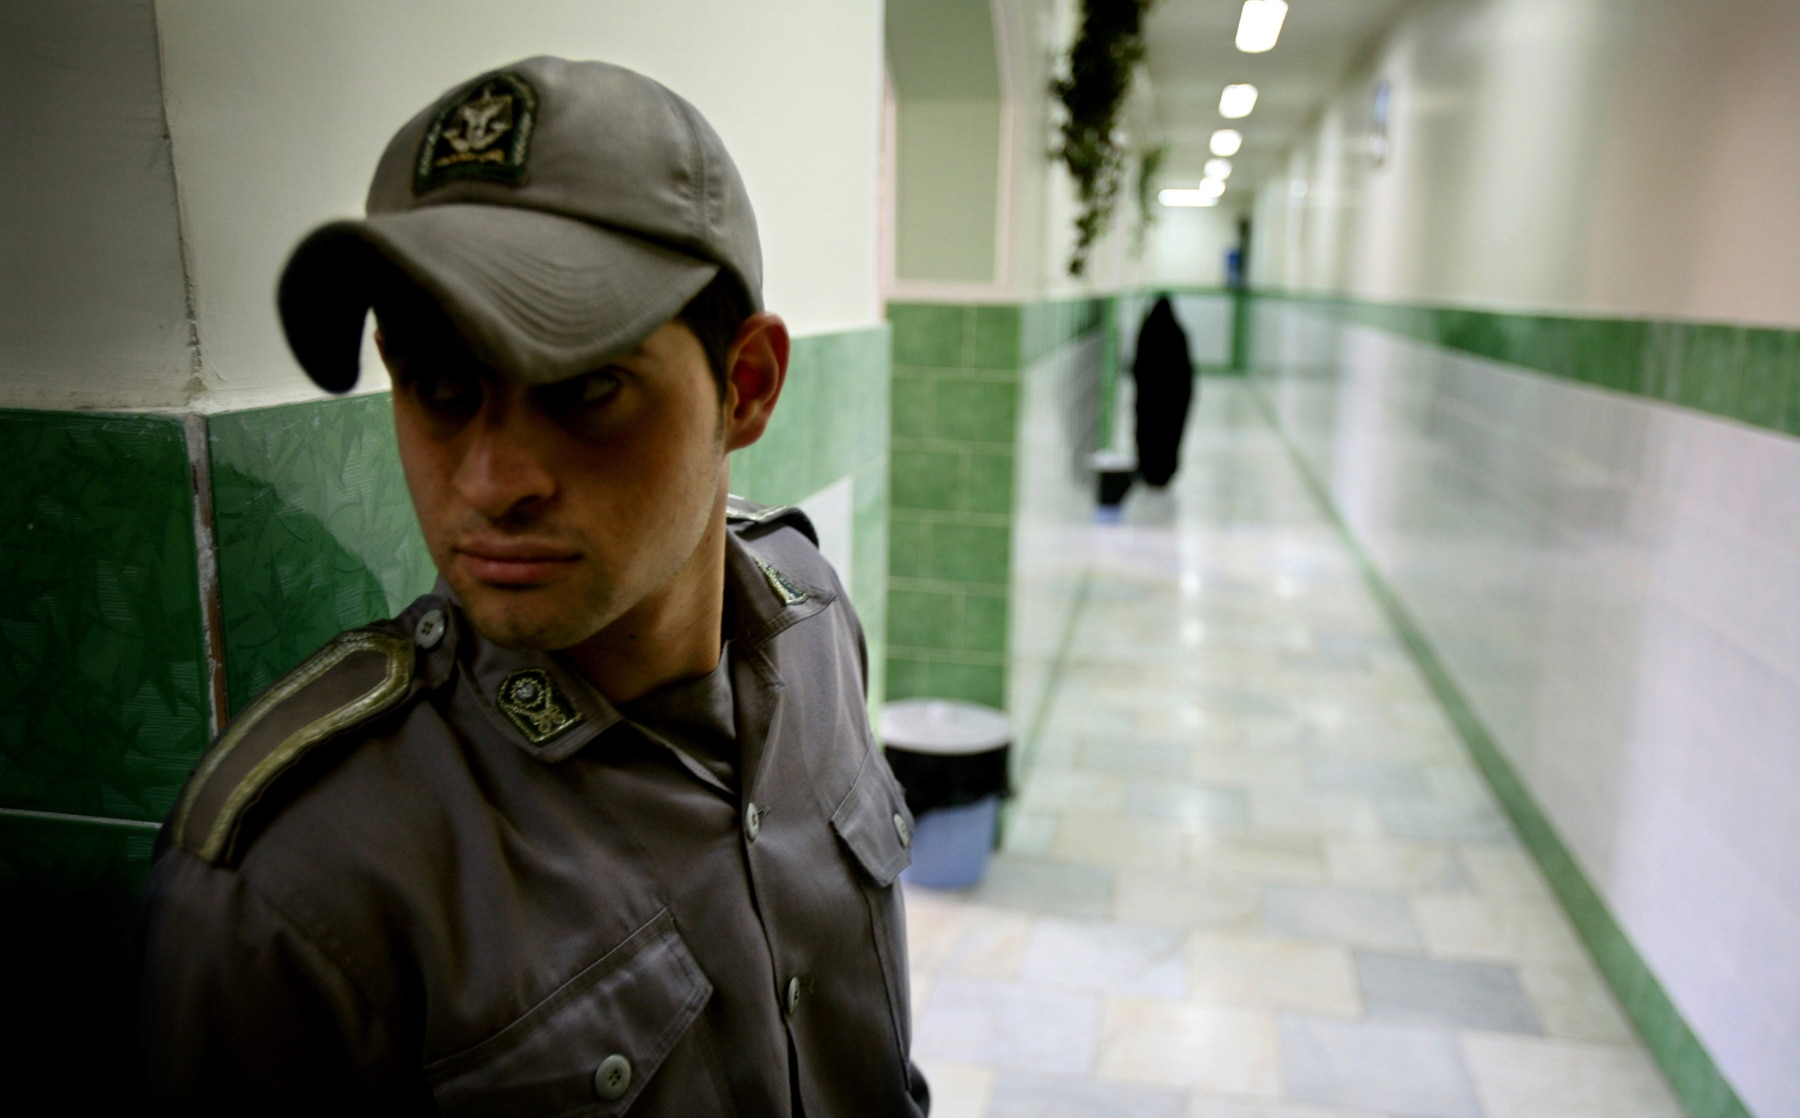 Young man in uniform with bill cap standing in a hallway (© Morteza Nikoubazl/Reuters)